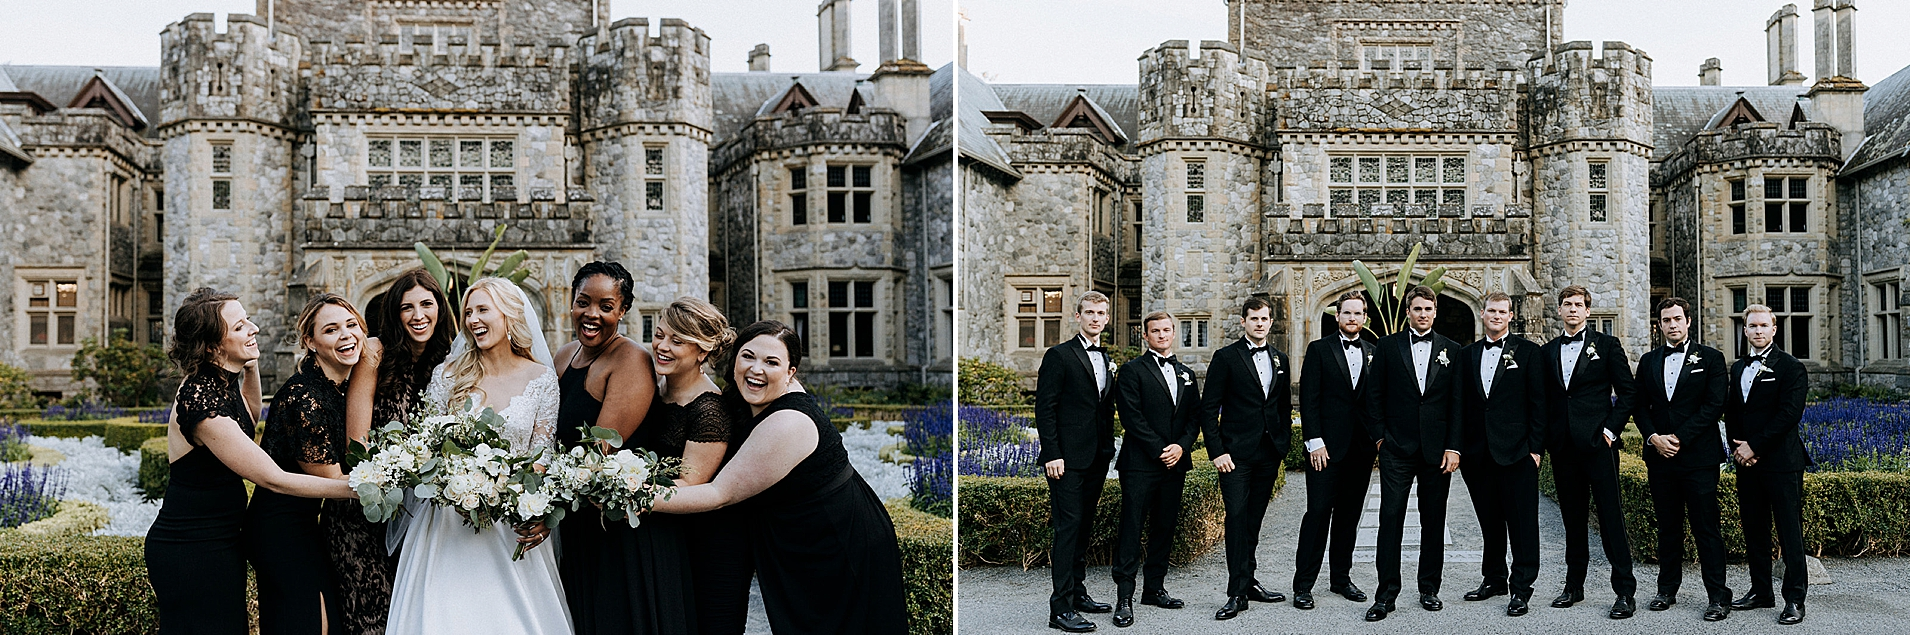 Hatley Castle Wedding photographer bridesmaids and groomsmen X-Men